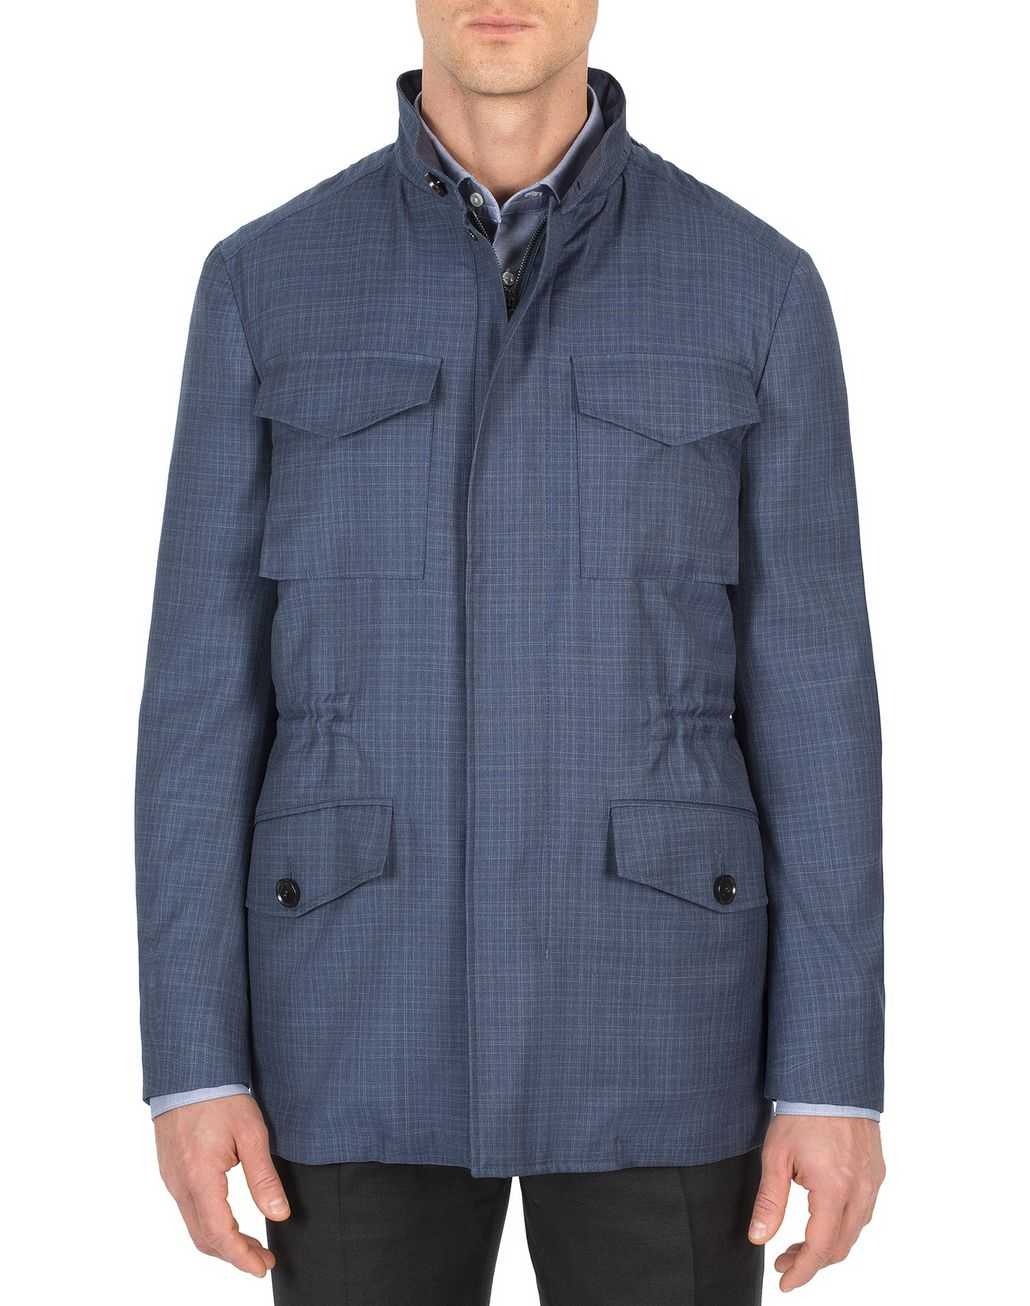 BRIONI Navy-Blue Check Trans-Seasonal Field Jacket Outerwear Man r